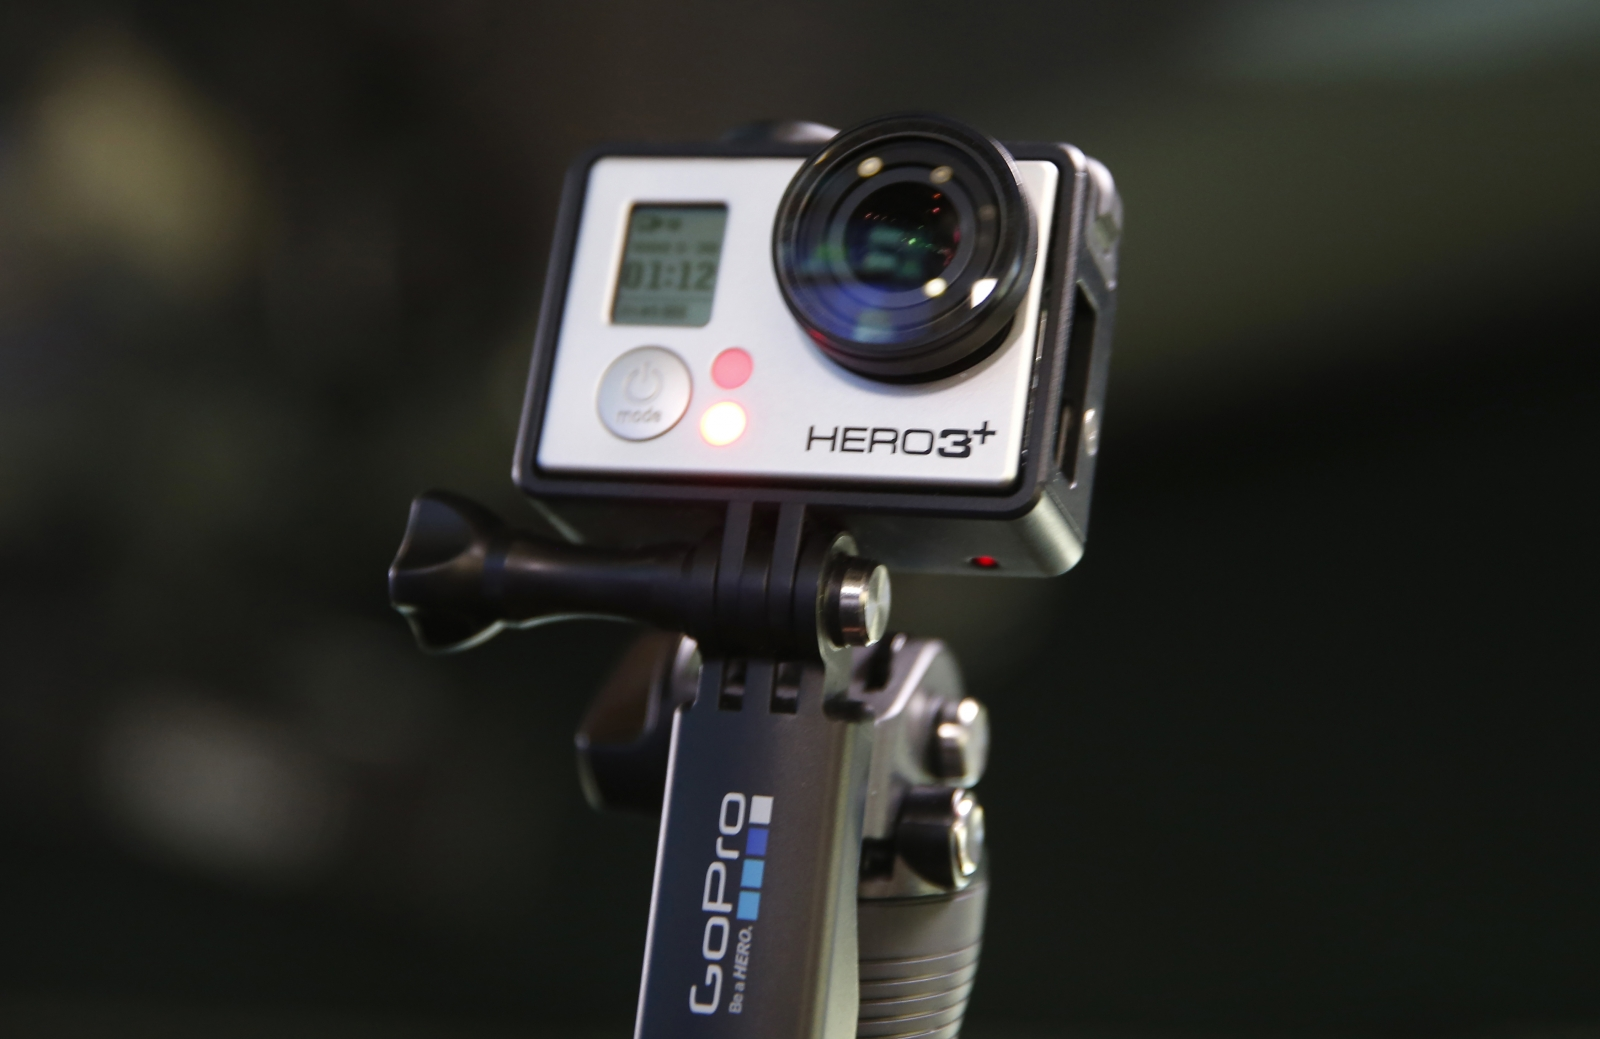 A GoPro Hero 3  camera connected to an extendible tripod